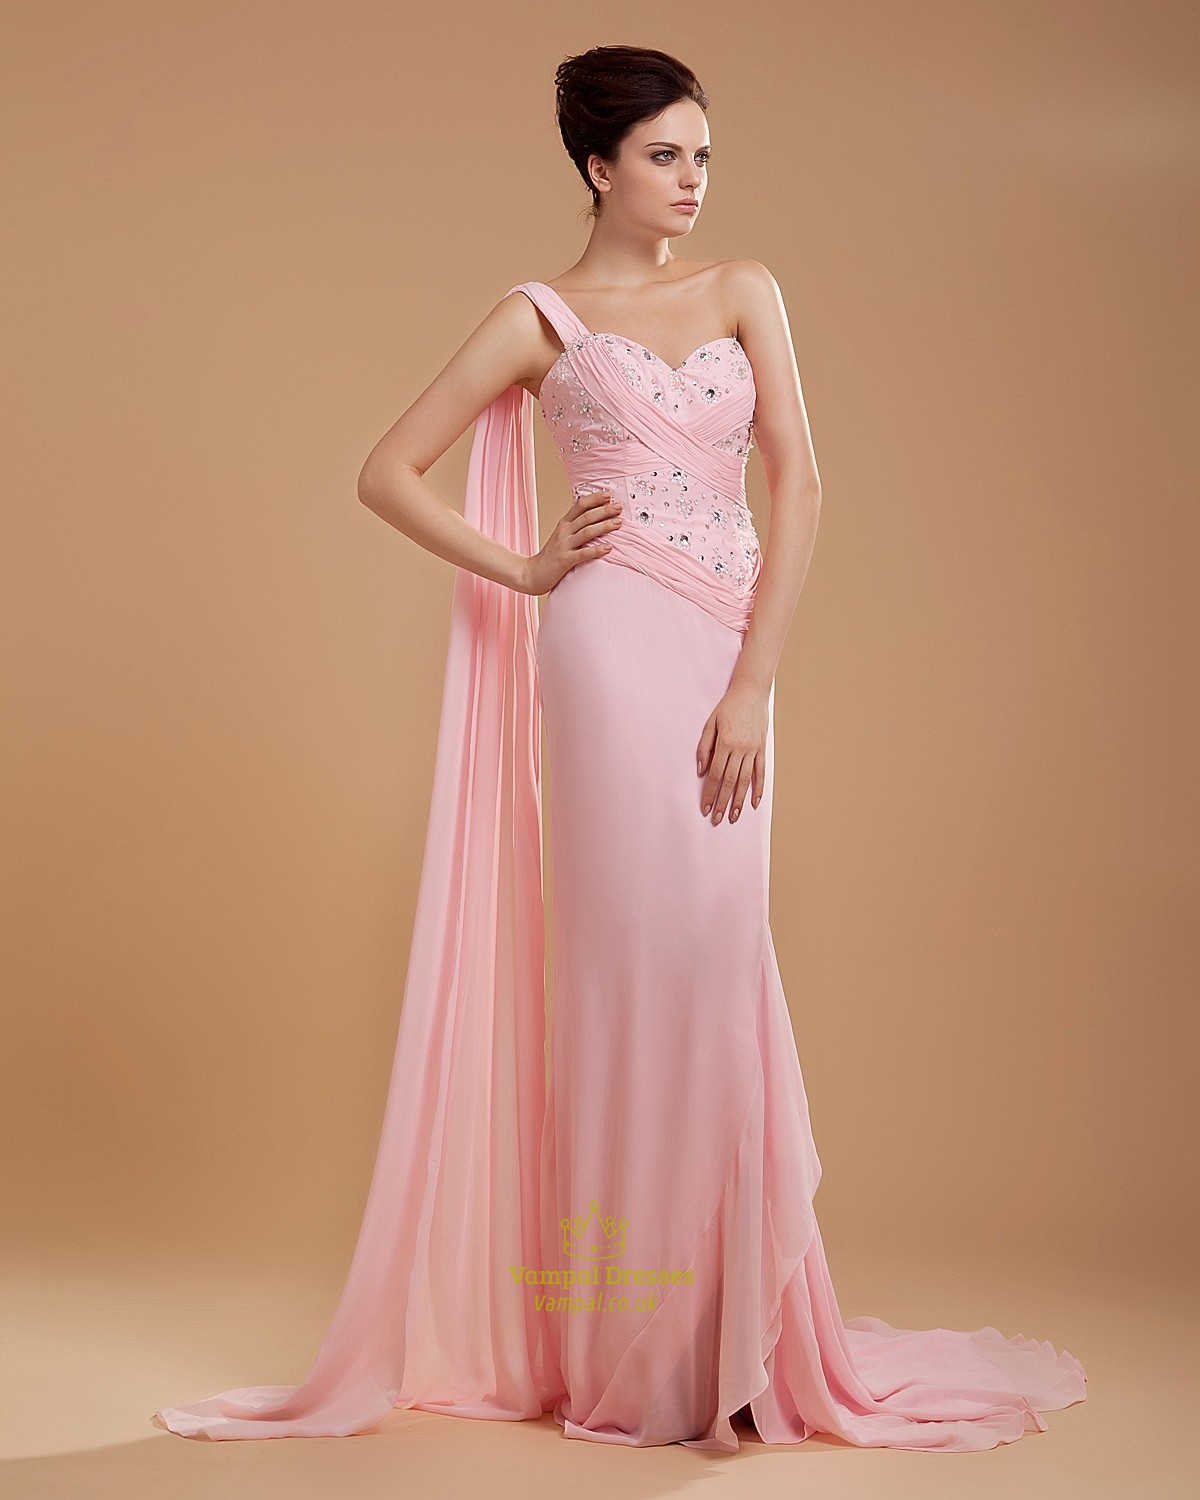 Fuchsia Gown: One Shoulder Light Pink Bridesmaid Dresses Chiffon Long